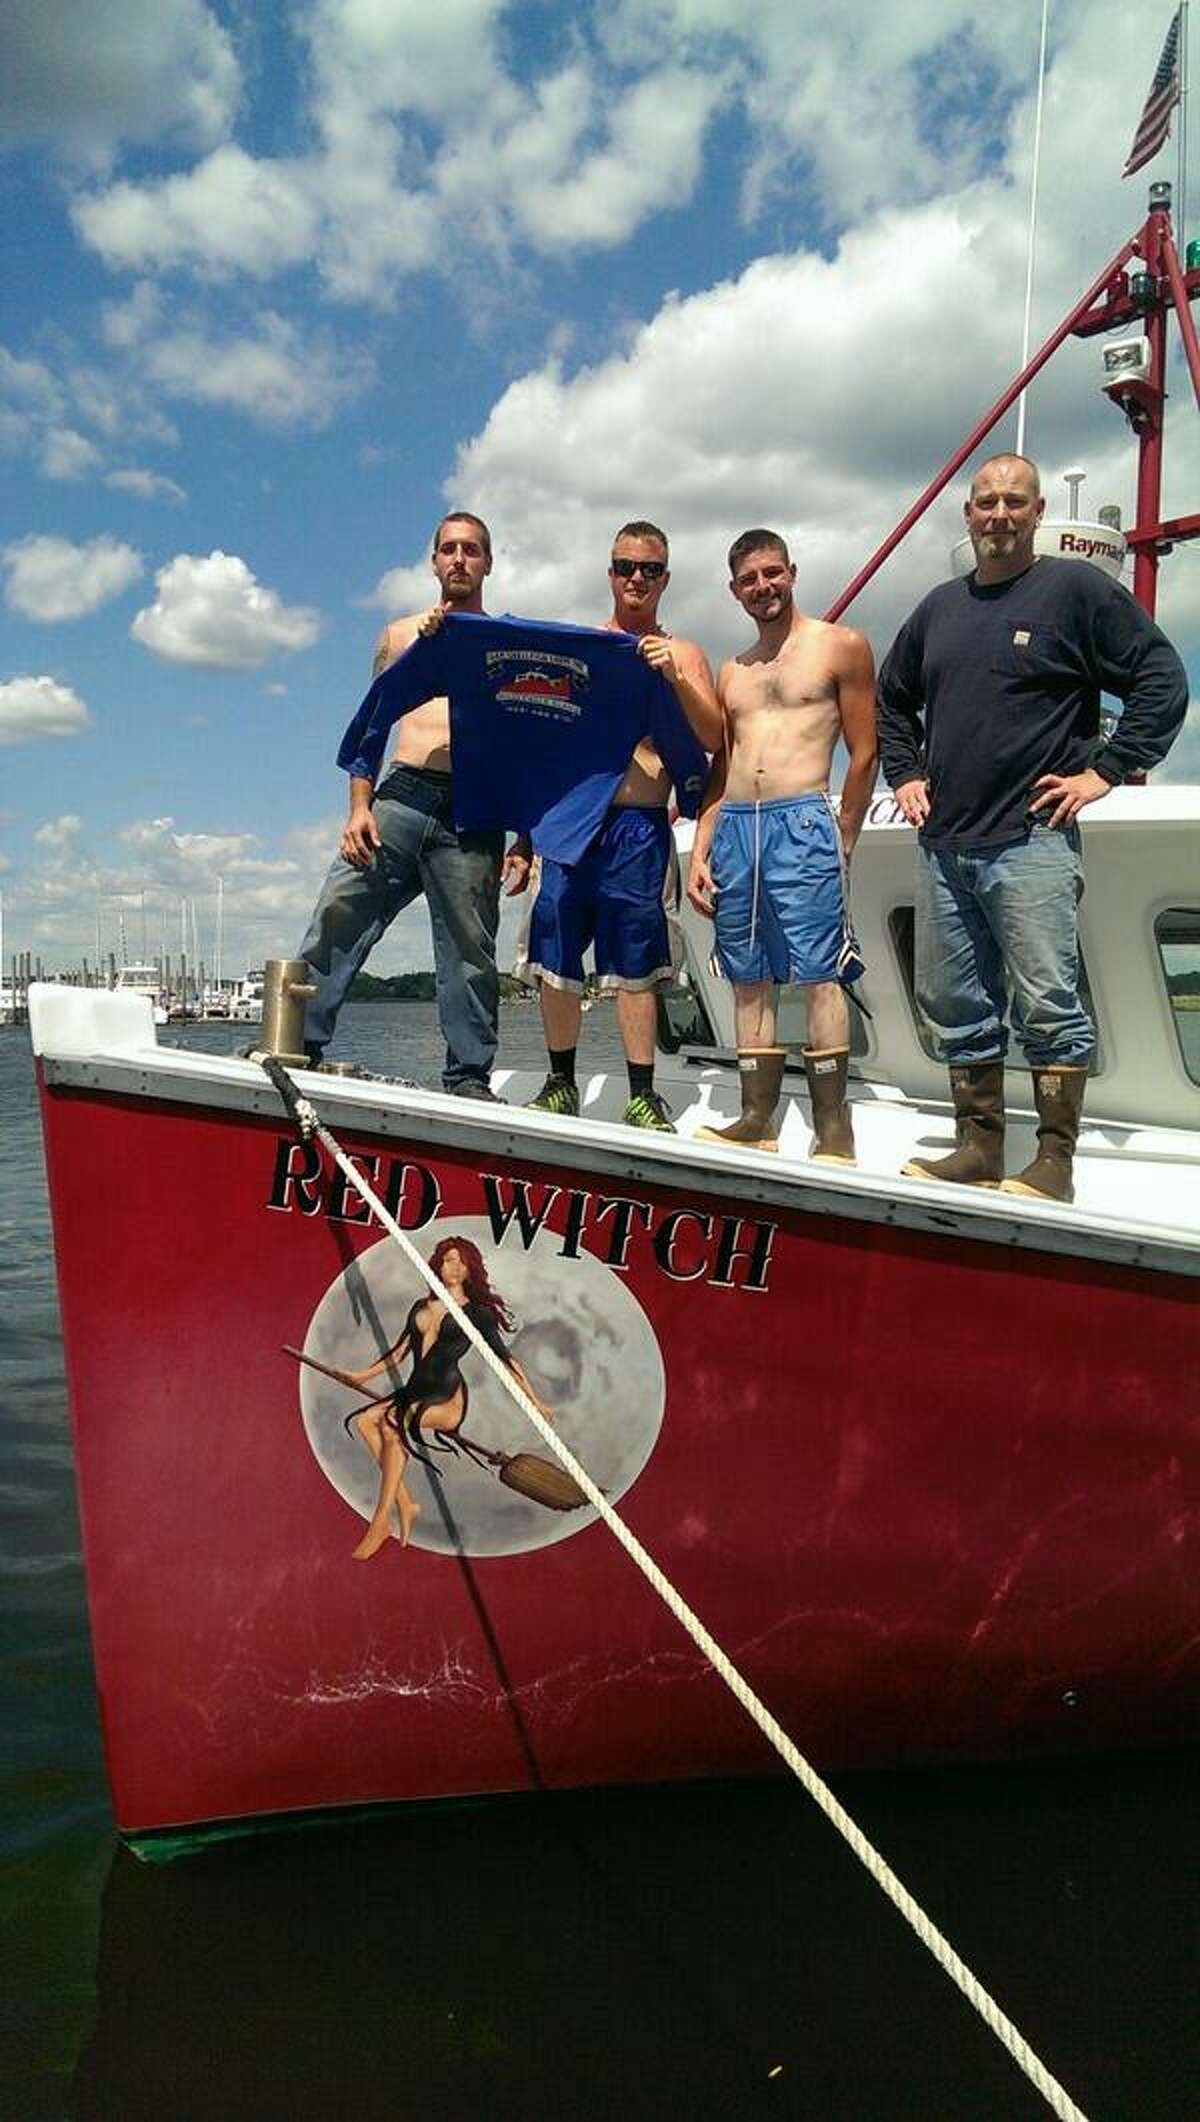 The captain and crew of the Red Witch, one of three boats who came to aid of boat fire in Stratford. The Red Witch is a clam boat, similar to the one that cought fire in the Housatonic River on Saturday, June 7, 2014. Three people on board were rescued, but one of the men received three-degree burns.